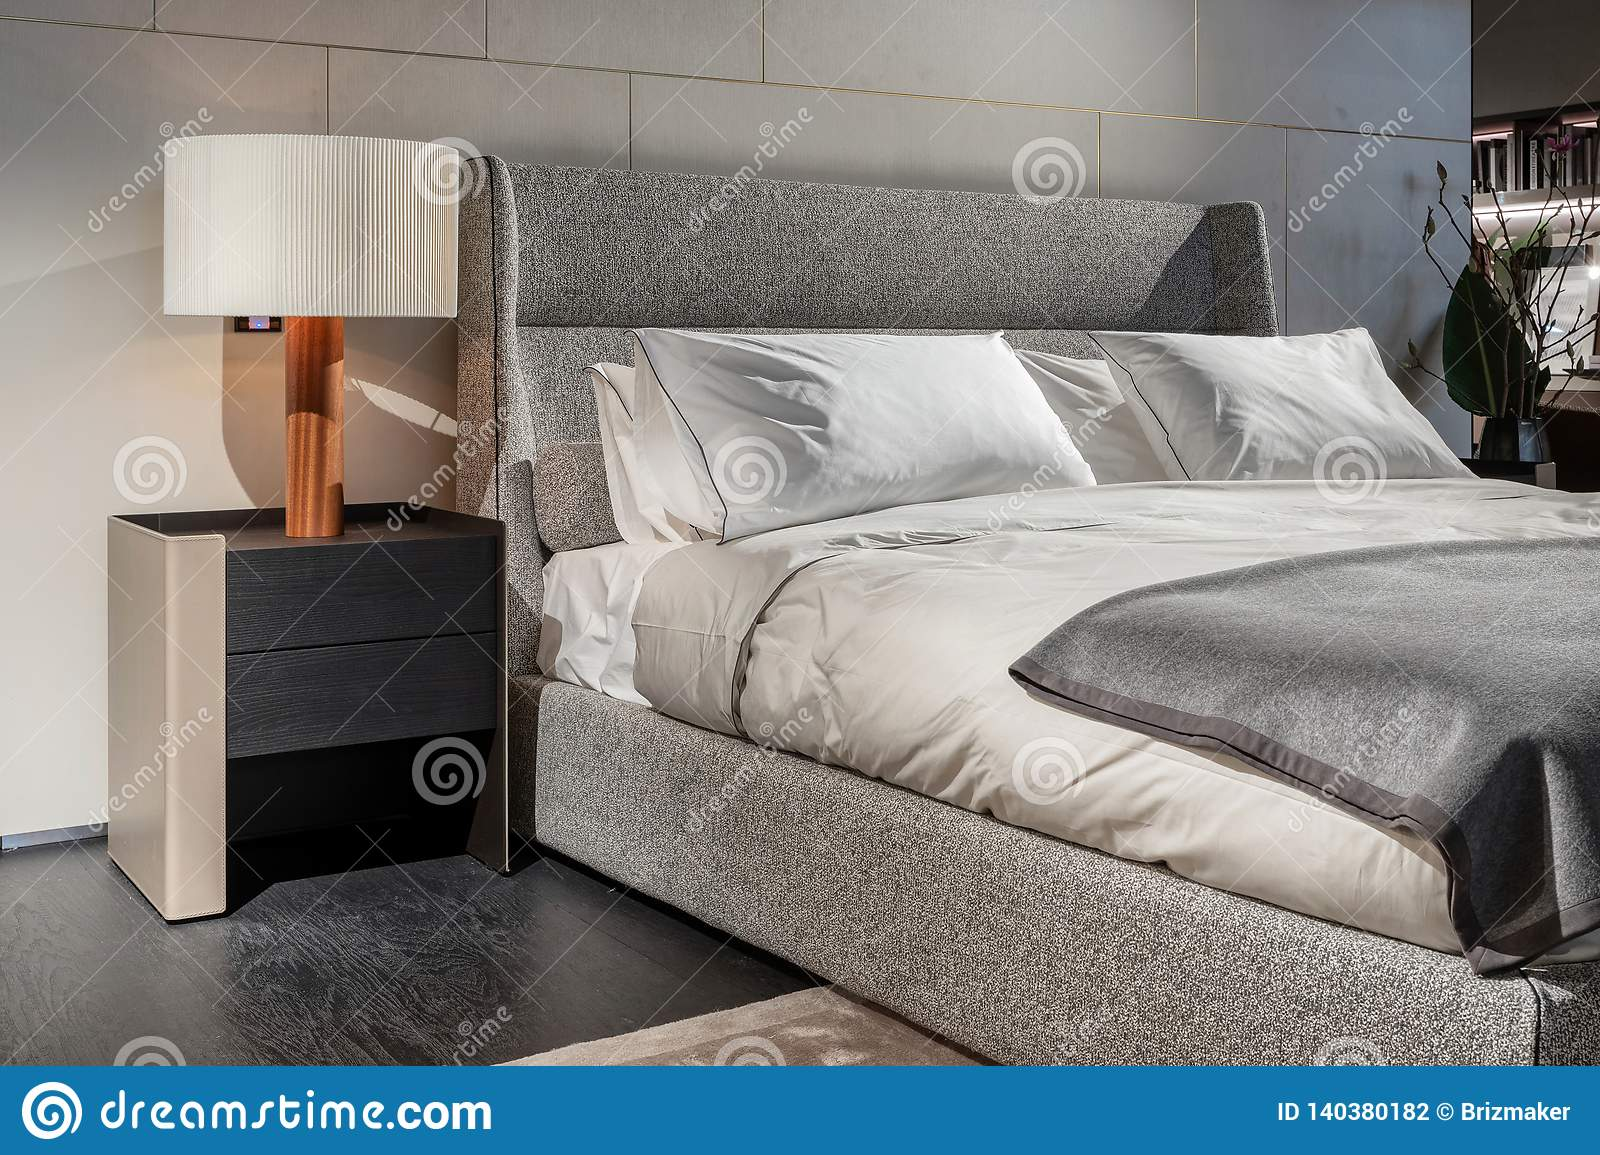 Bed In Bedroom Interior With White Lamp On The Bedside Table